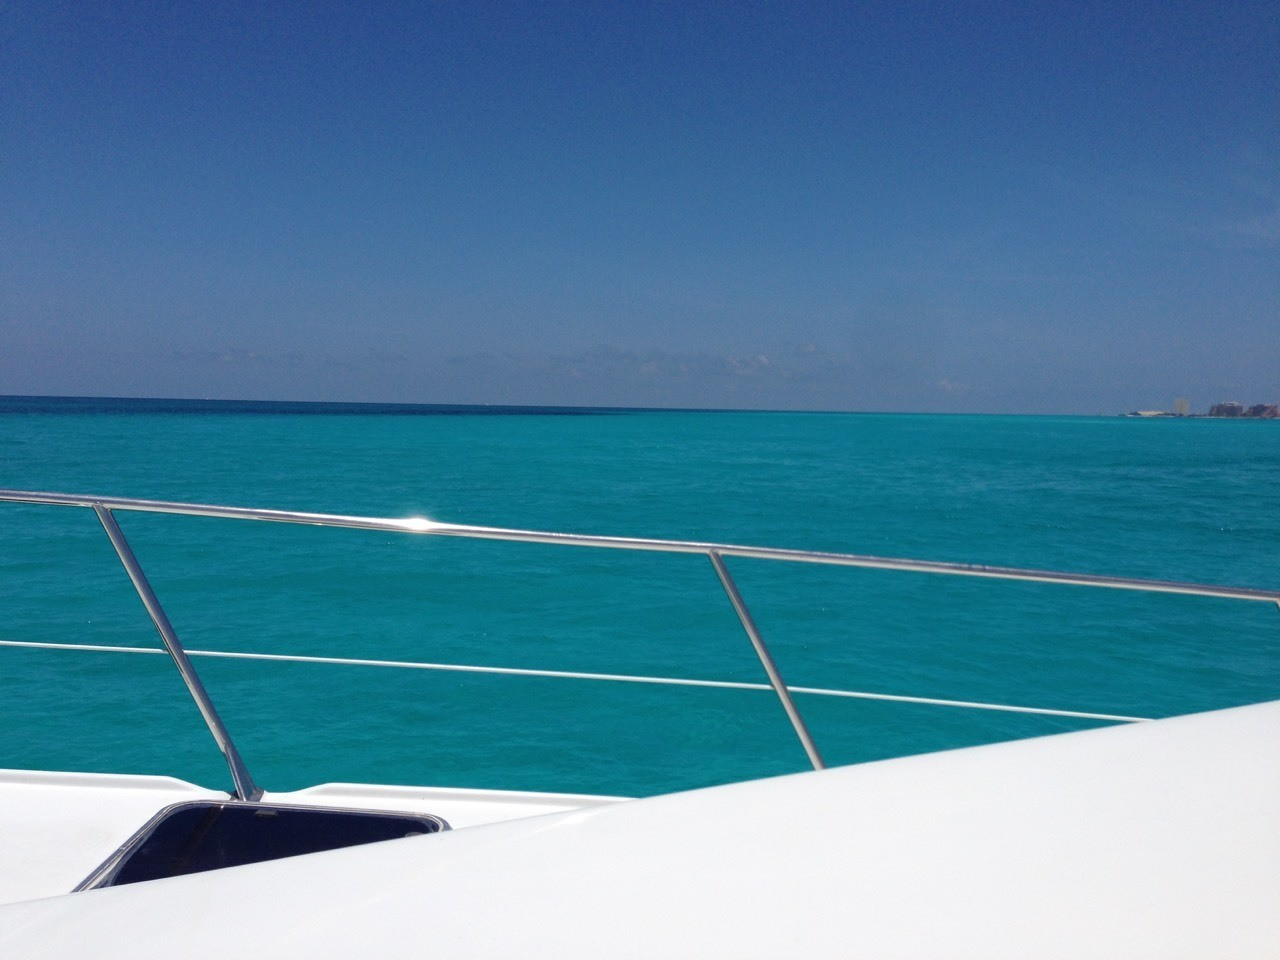 The ride over from Cancun to Isla Mujeres